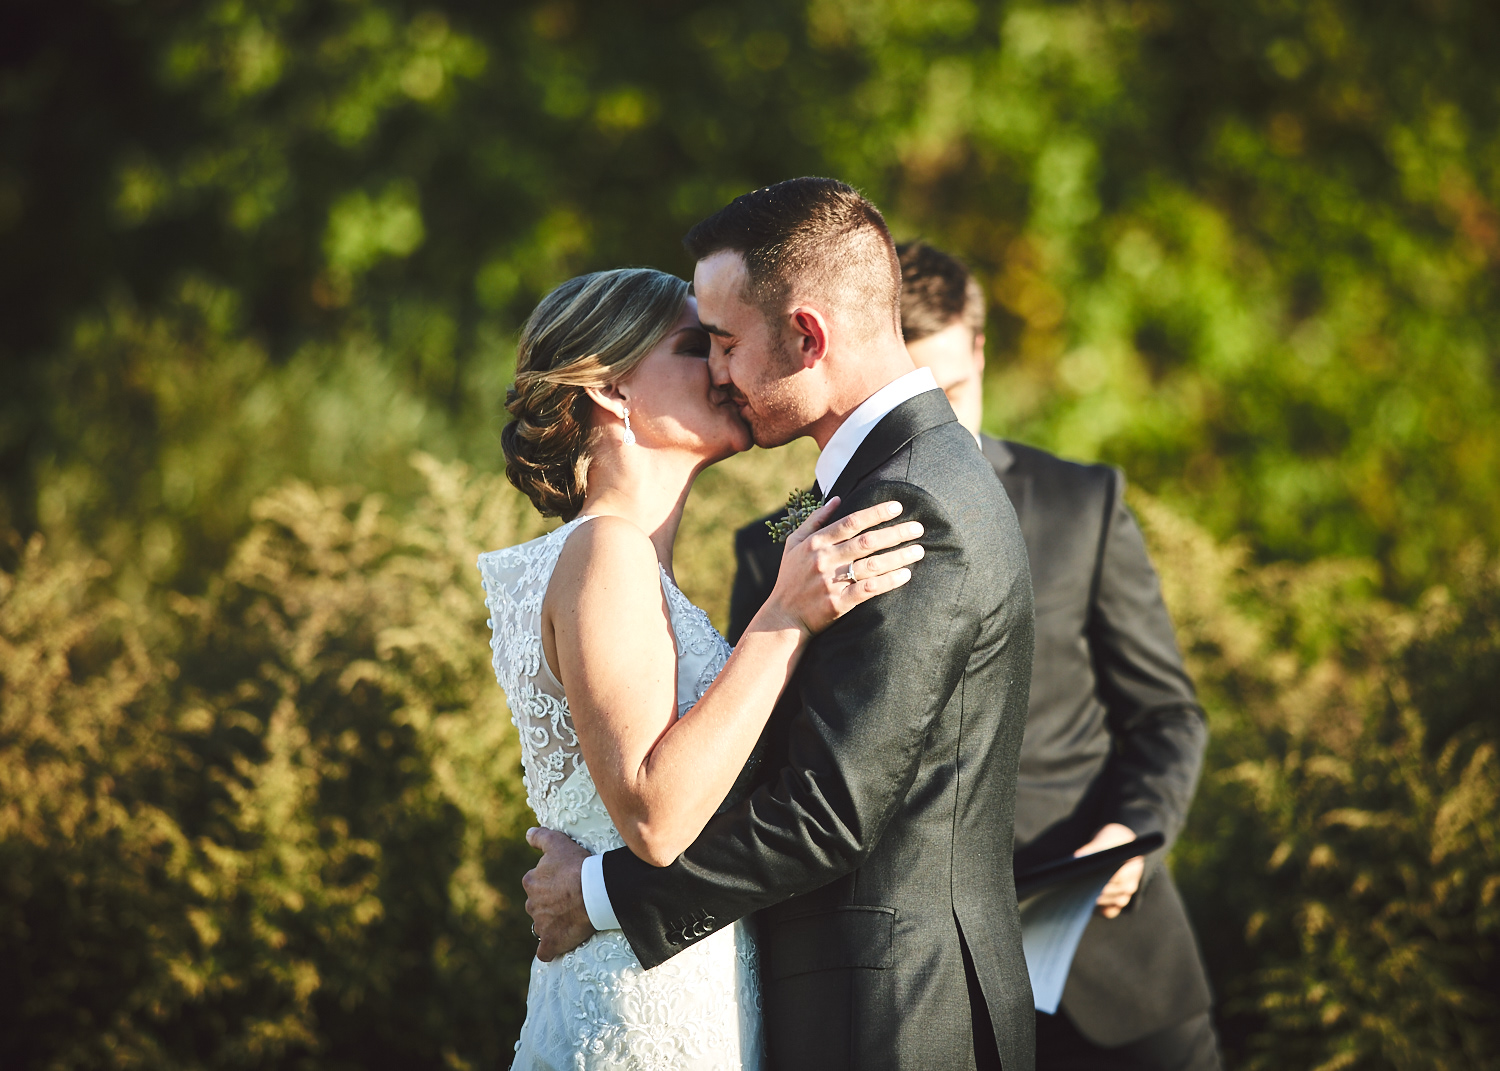 161013__T&J__PeronaFarmsWedding_By_BriJohnsonWeddings_0066.jpg